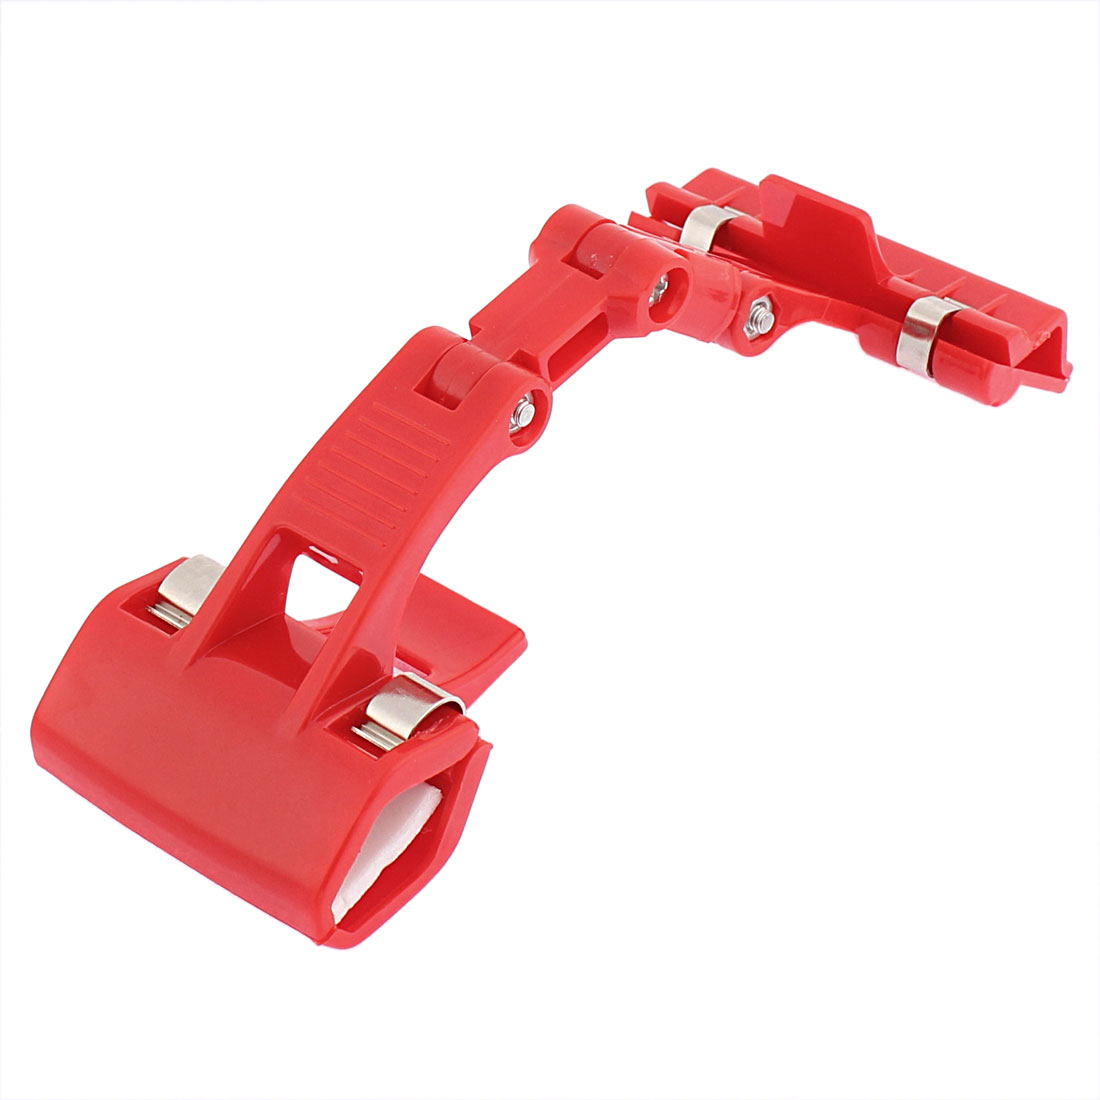 Multipurposes Advertizing Card Plastic 360 Degree Rotatable Rotating Pole Double Clamps Pop Display Holder Clip Red